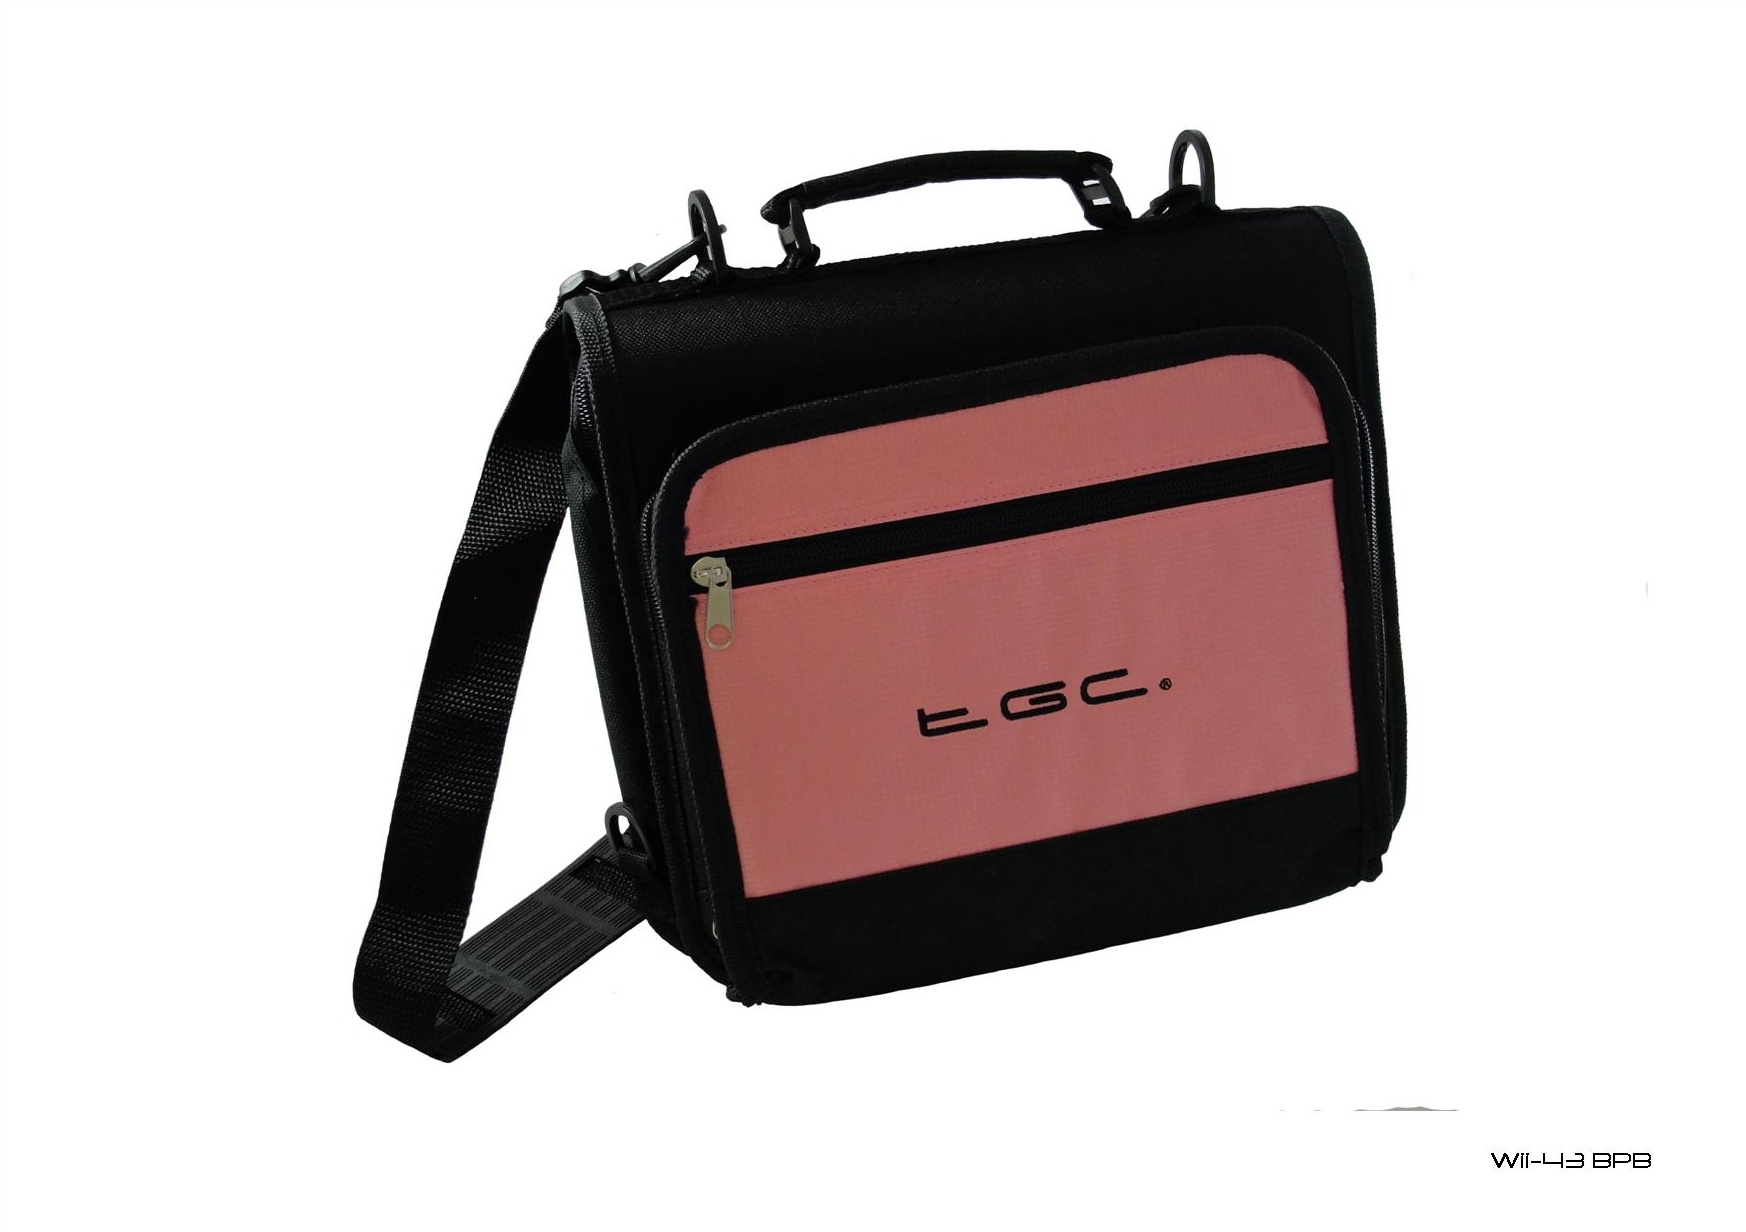 Product Photo/New Baby Pink & Black TGC Portable DVD Carry Case Bag with In Car Strap Kit/Click to view.